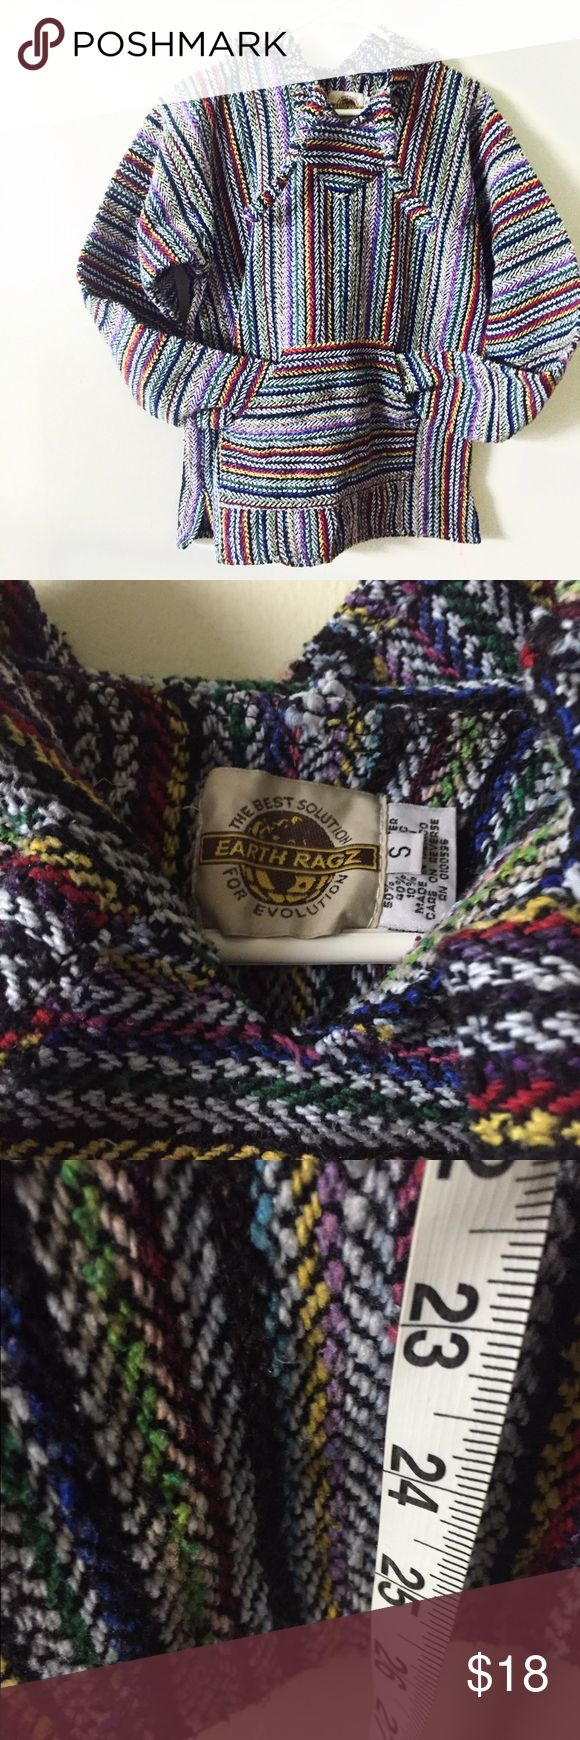 "Earth ragz small authentic Mexican Baja sweater Great condition 23"" chest measurments Vintage Sweaters"